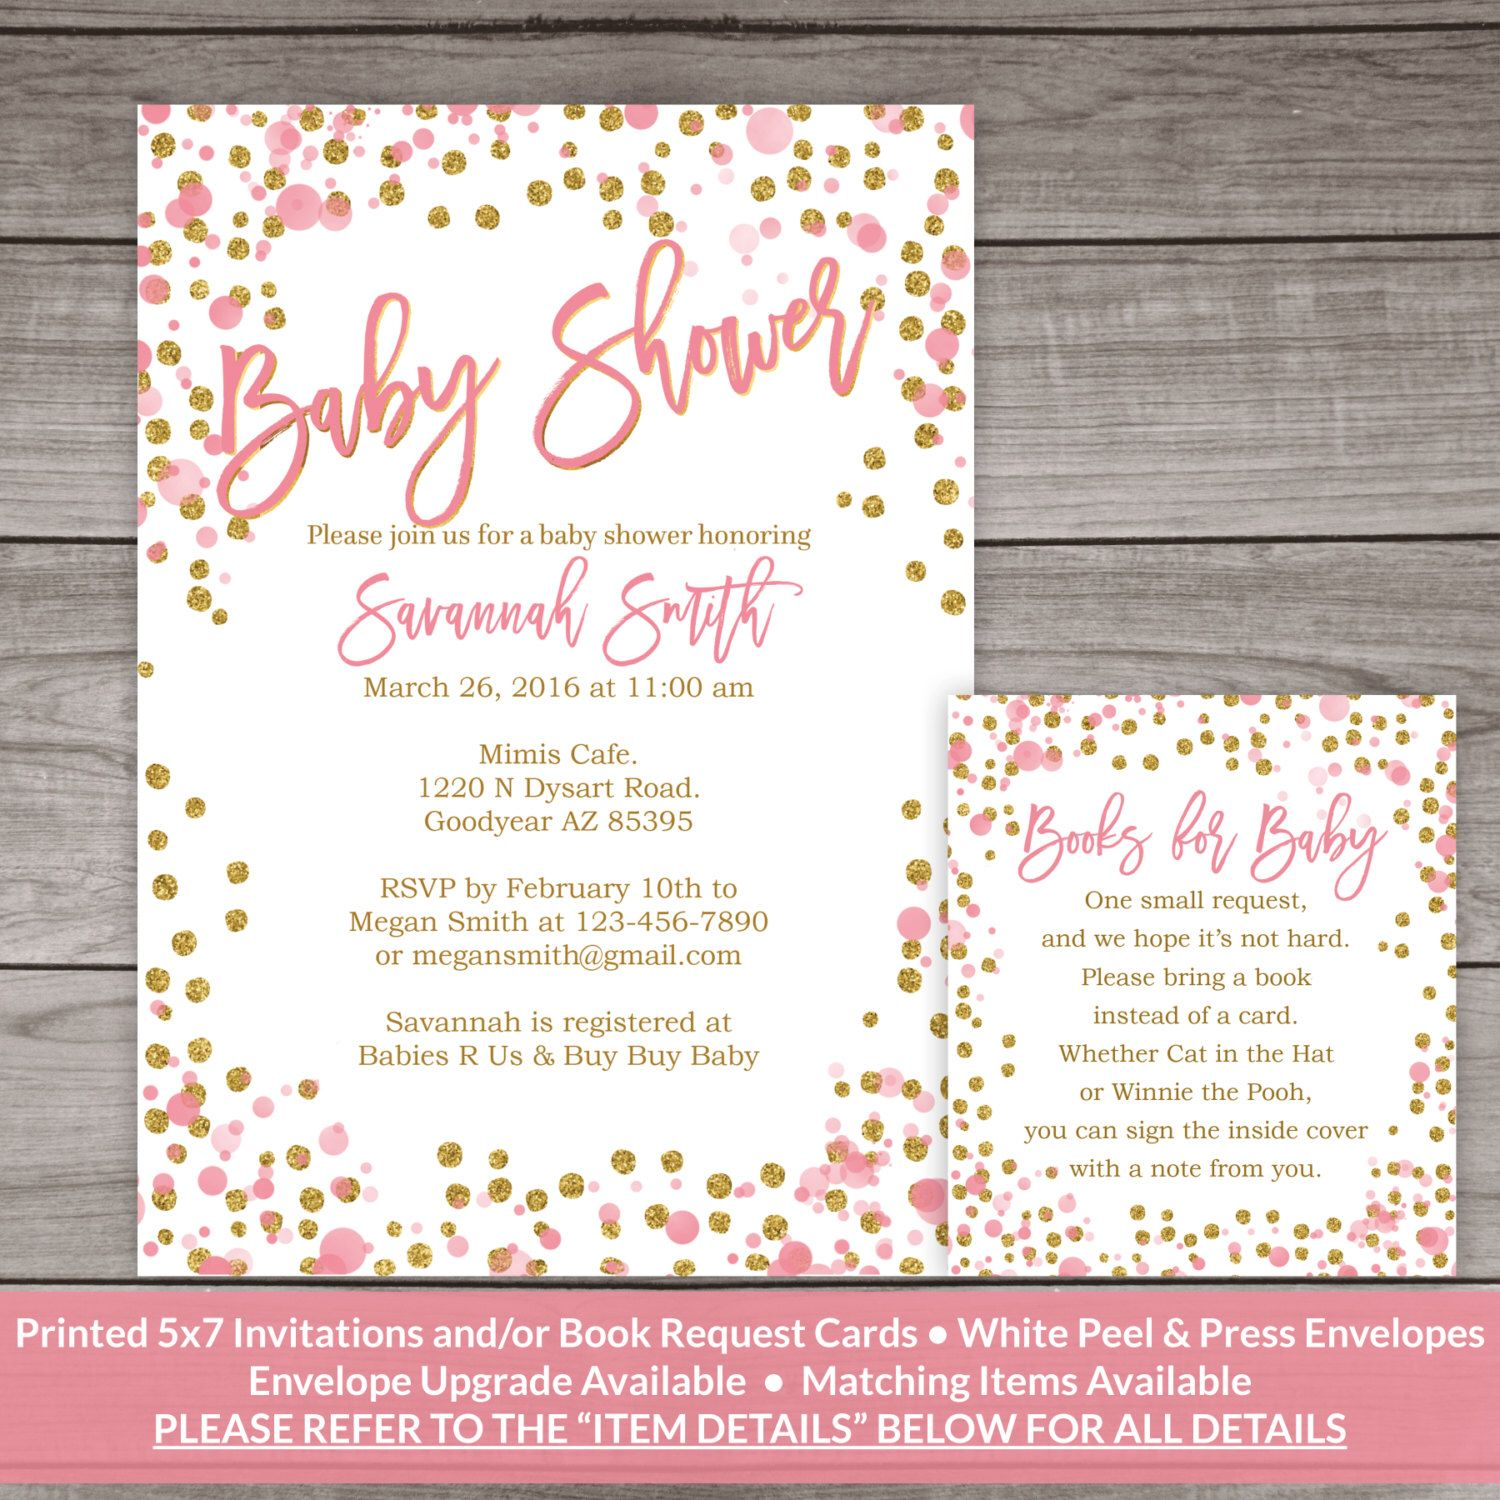 Pin by SimplyMadeDesigns on Baby Shower | Pinterest | Gold baby ...